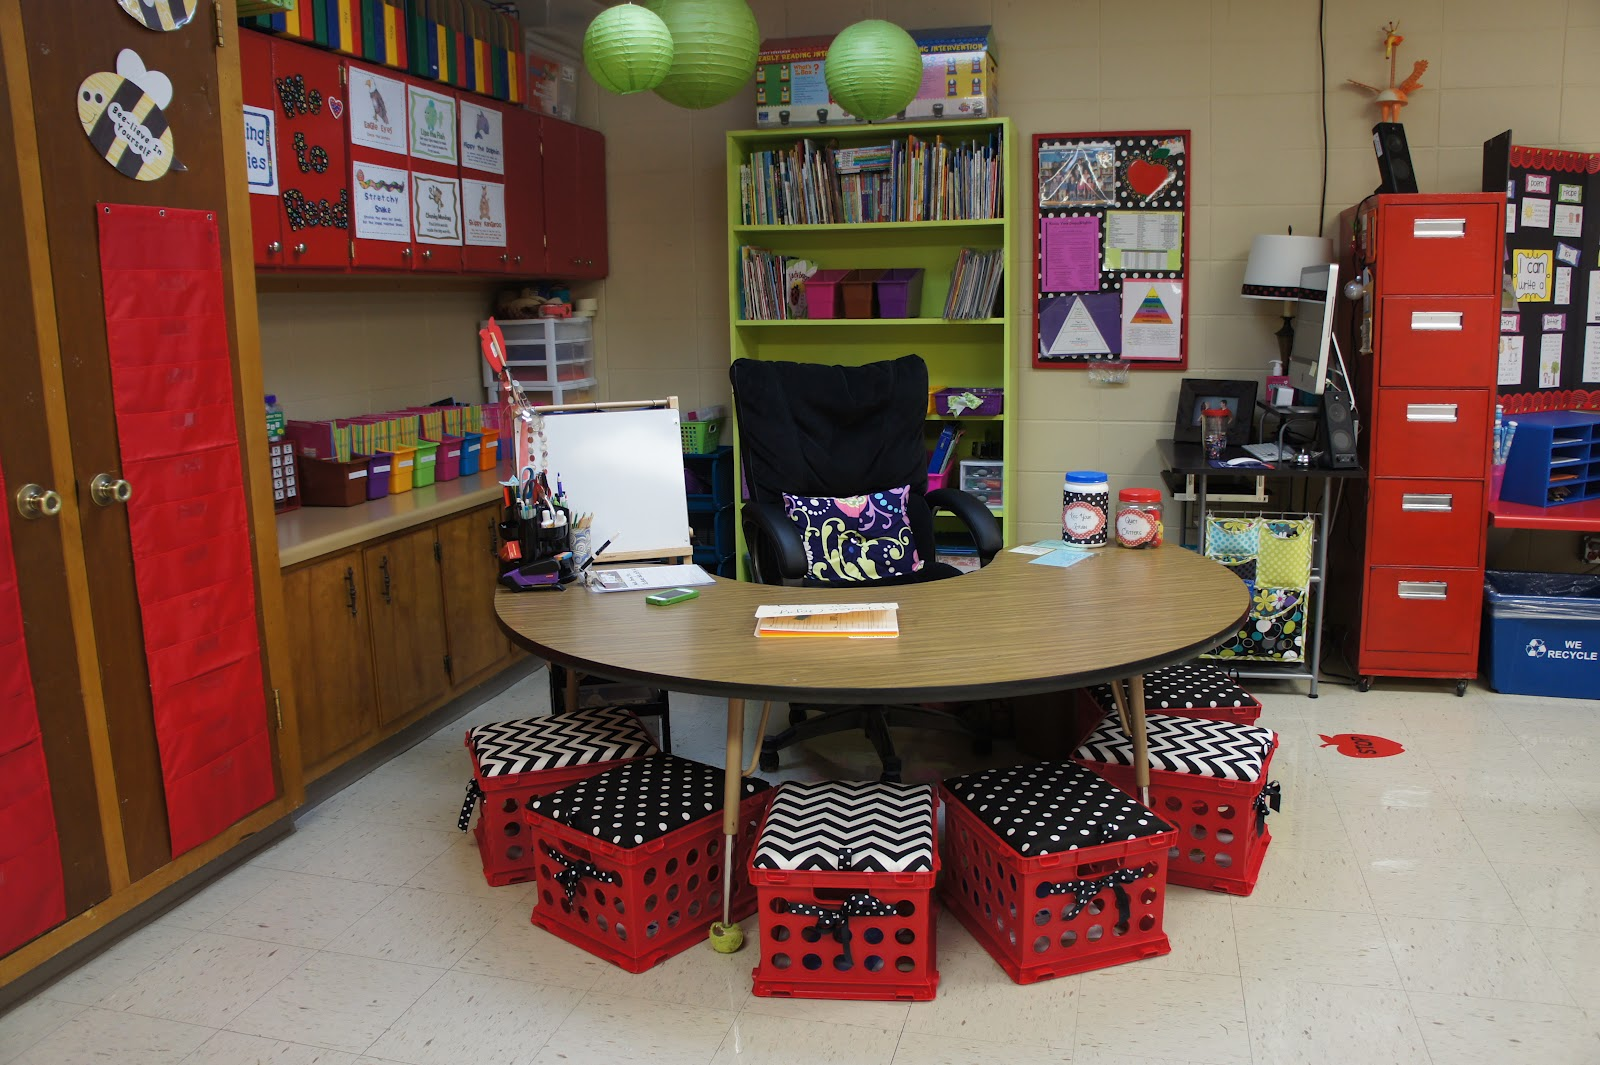 Kindergarten khronicles classroom preparations year 2 - Classroom desk organization ideas ...